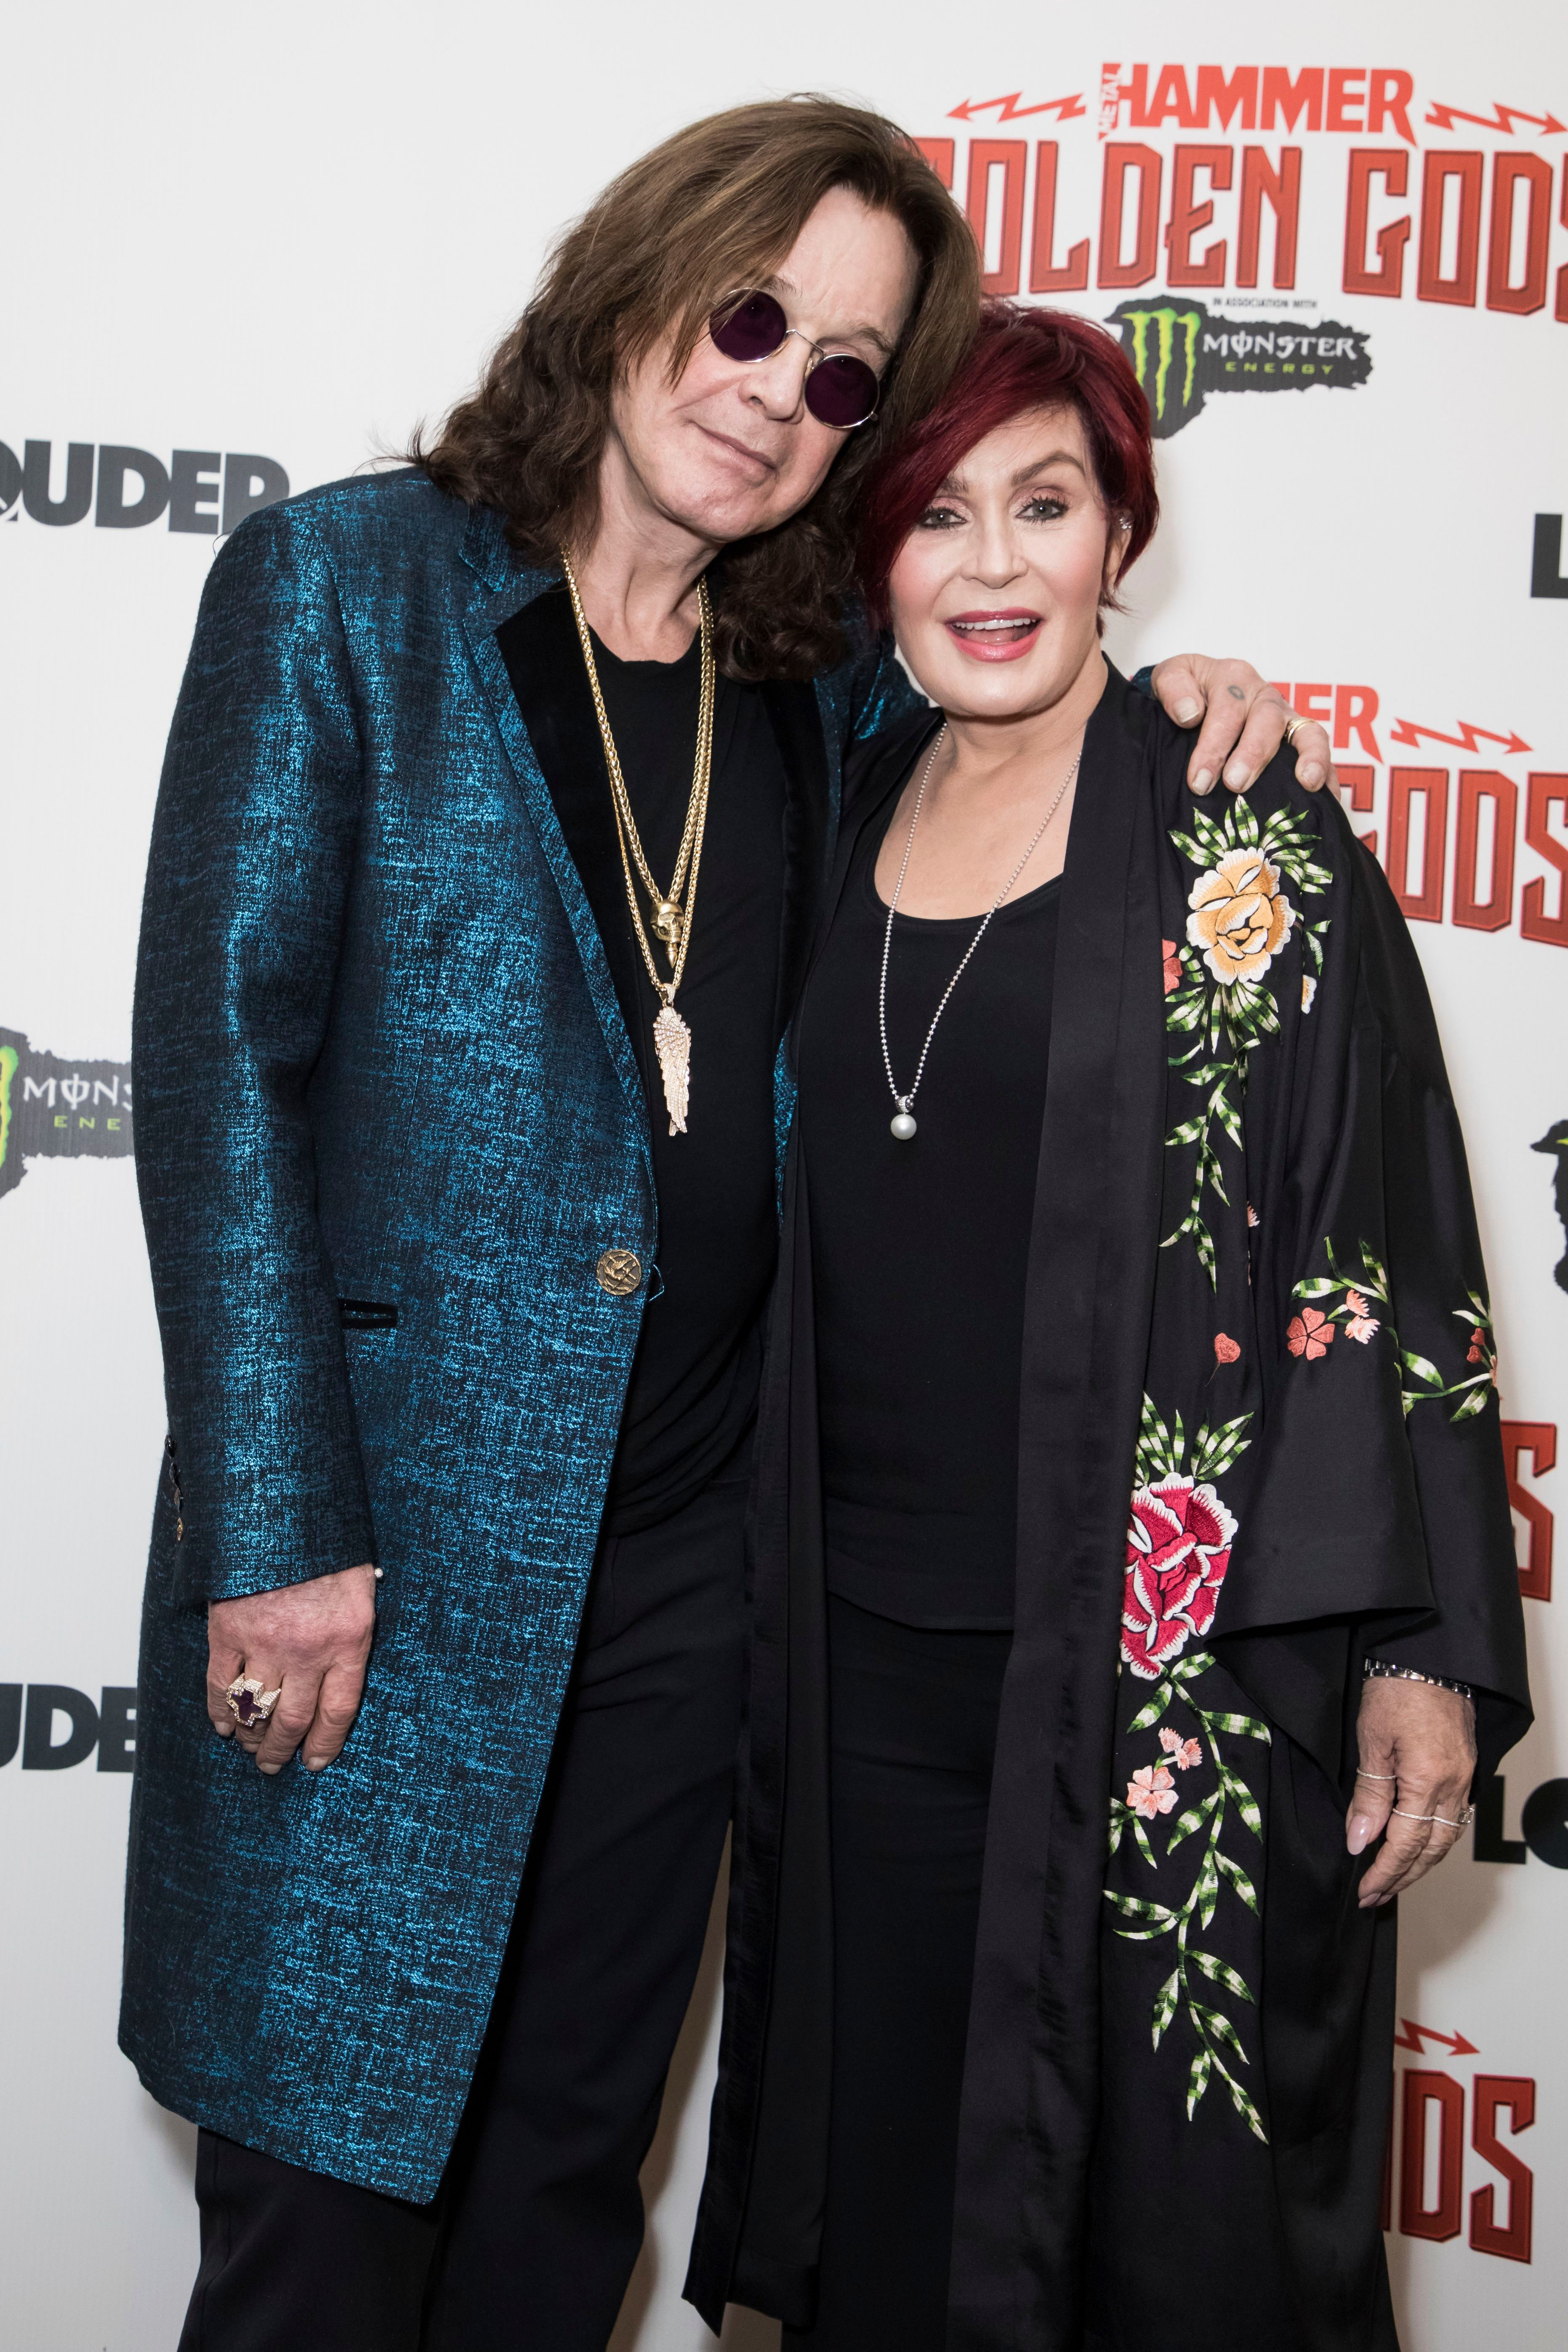 Sharon Osbourne Says She Wants to 'Produce a Movie' About Husband Ozzy's Life in 2020